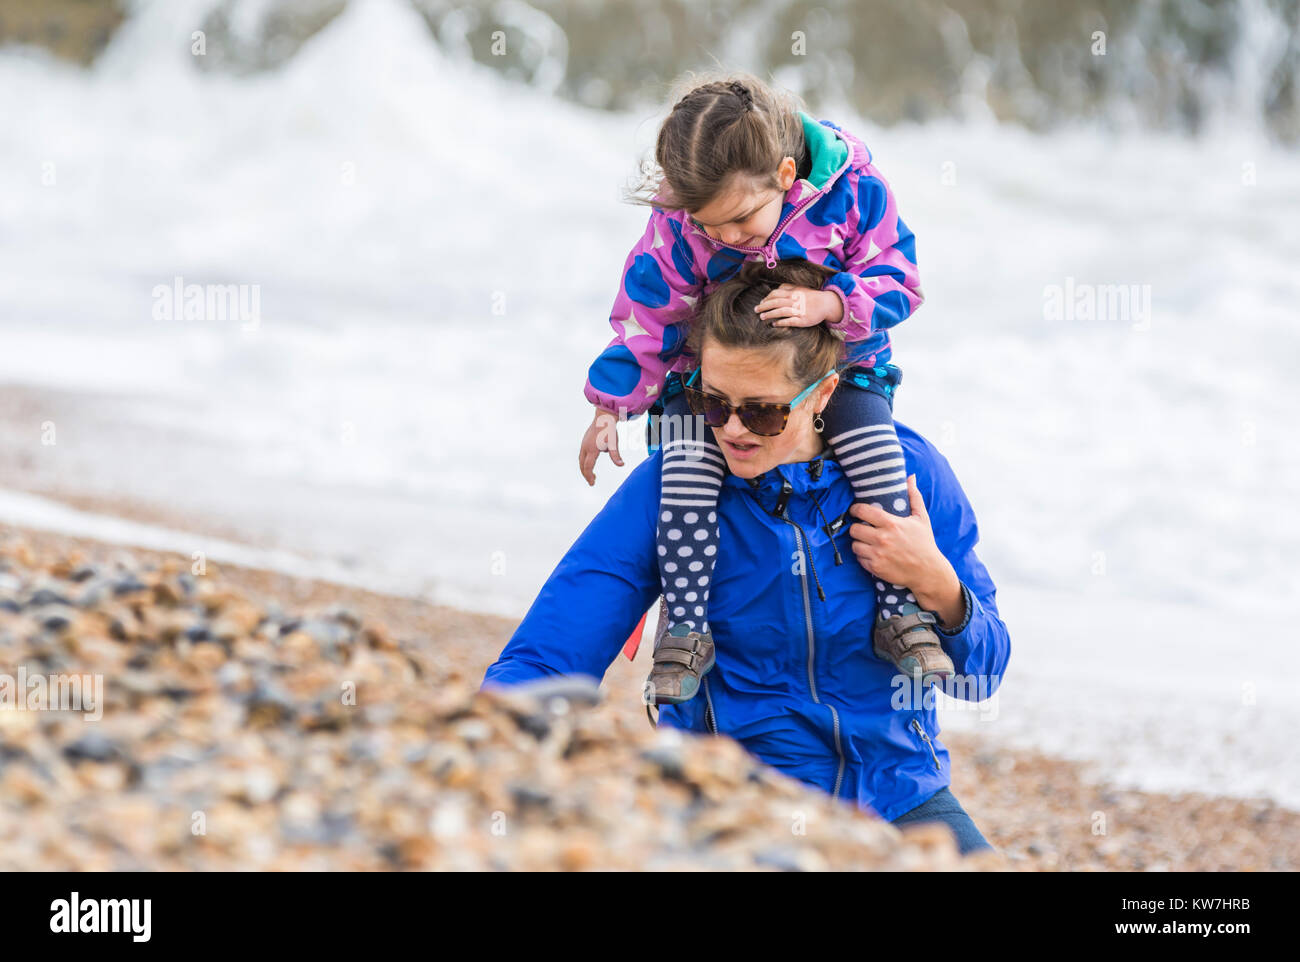 Child on woman's shoulders collecting shells on a beach on a rough day in the UK. - Stock Image